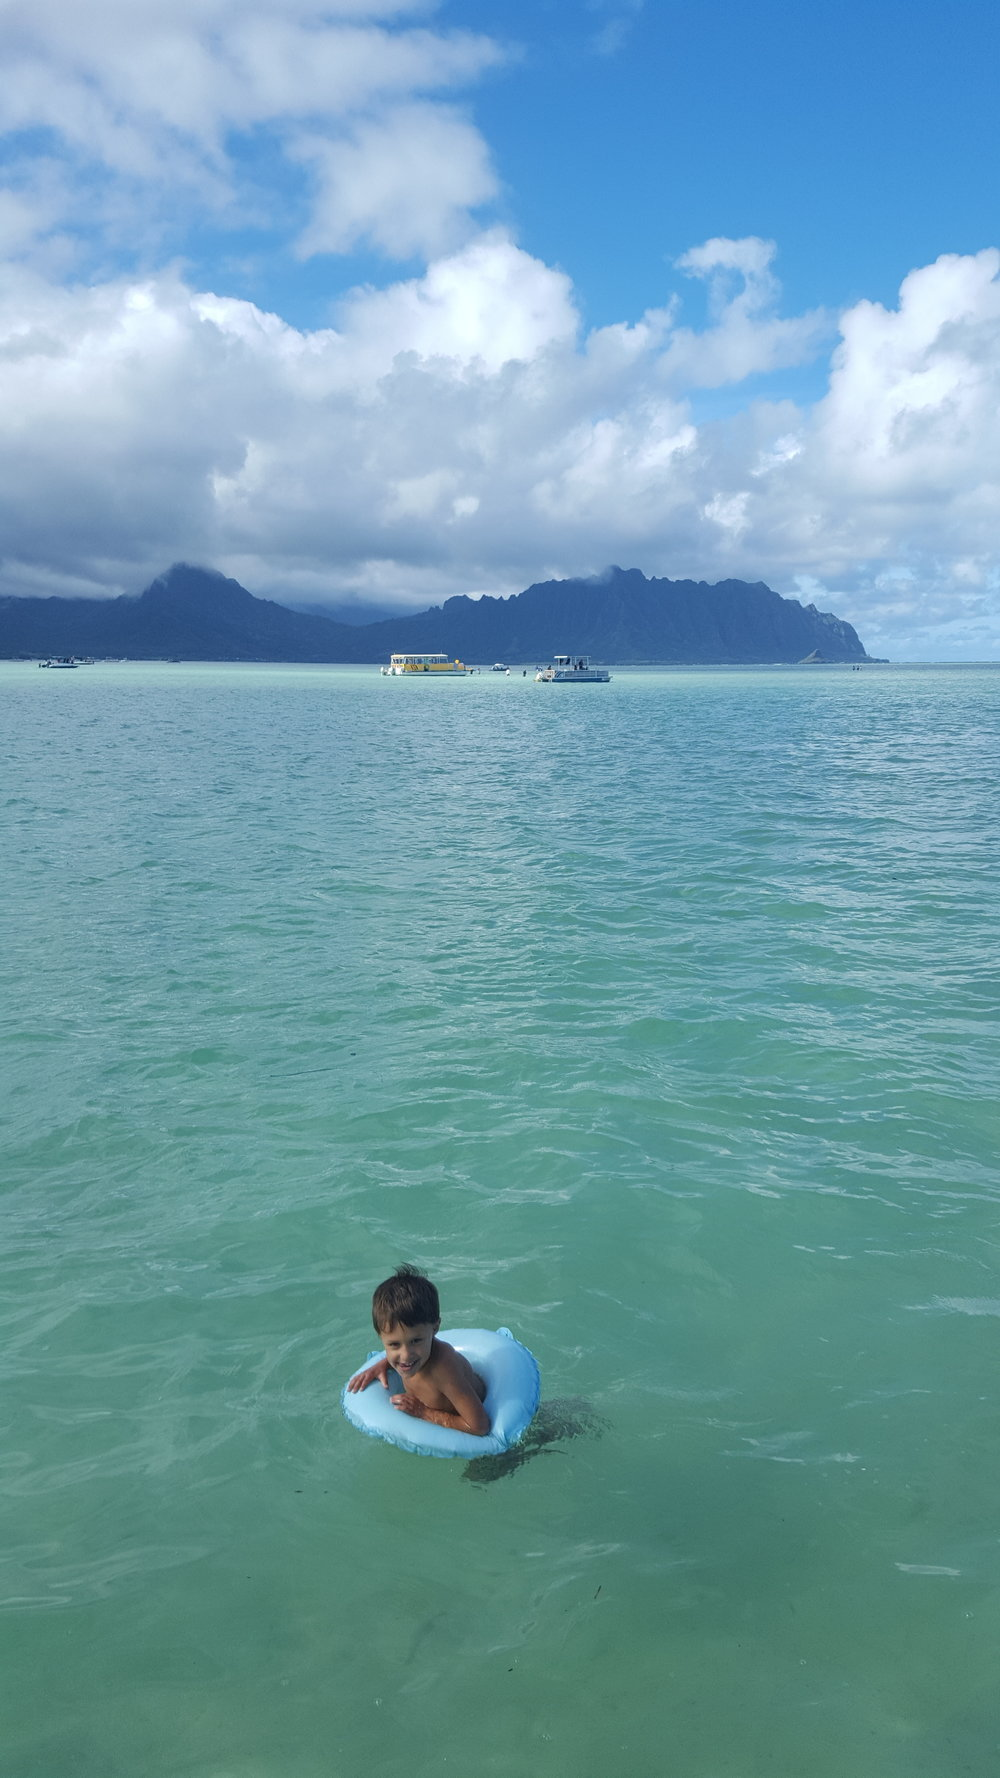 A boat ride in Kaneohe Bay with friends - Bennett taking a quick dip.